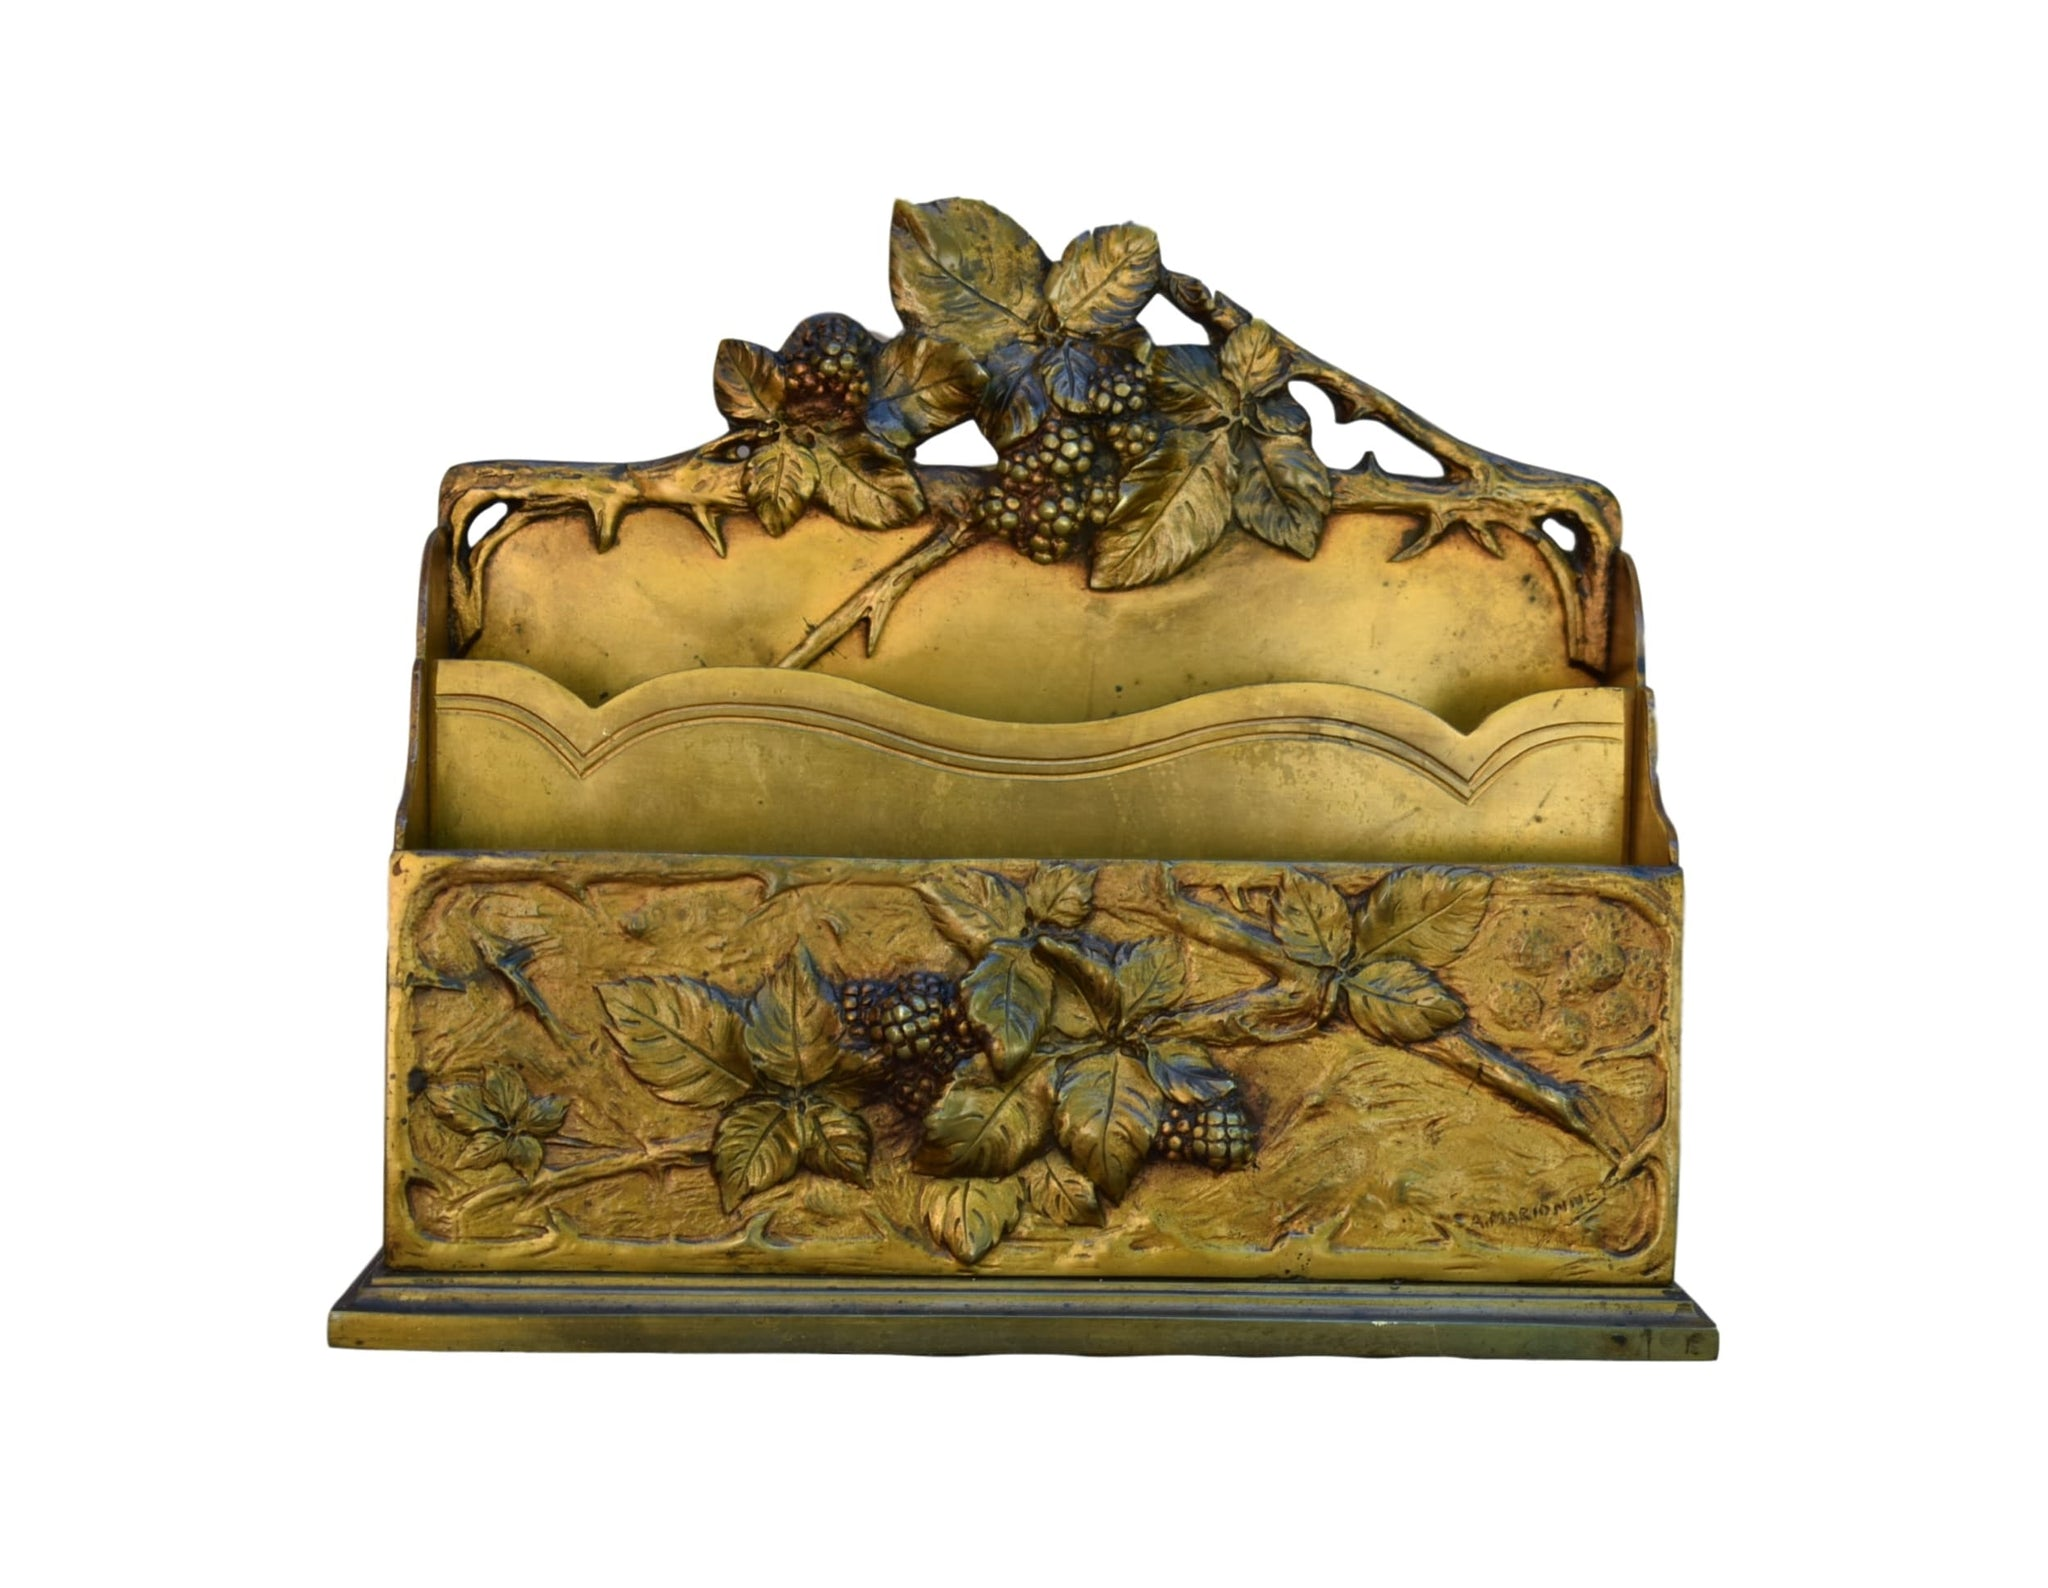 French Rare Art Nouveau Bronze Letter Holder by Albert Marionnet - Charmantiques